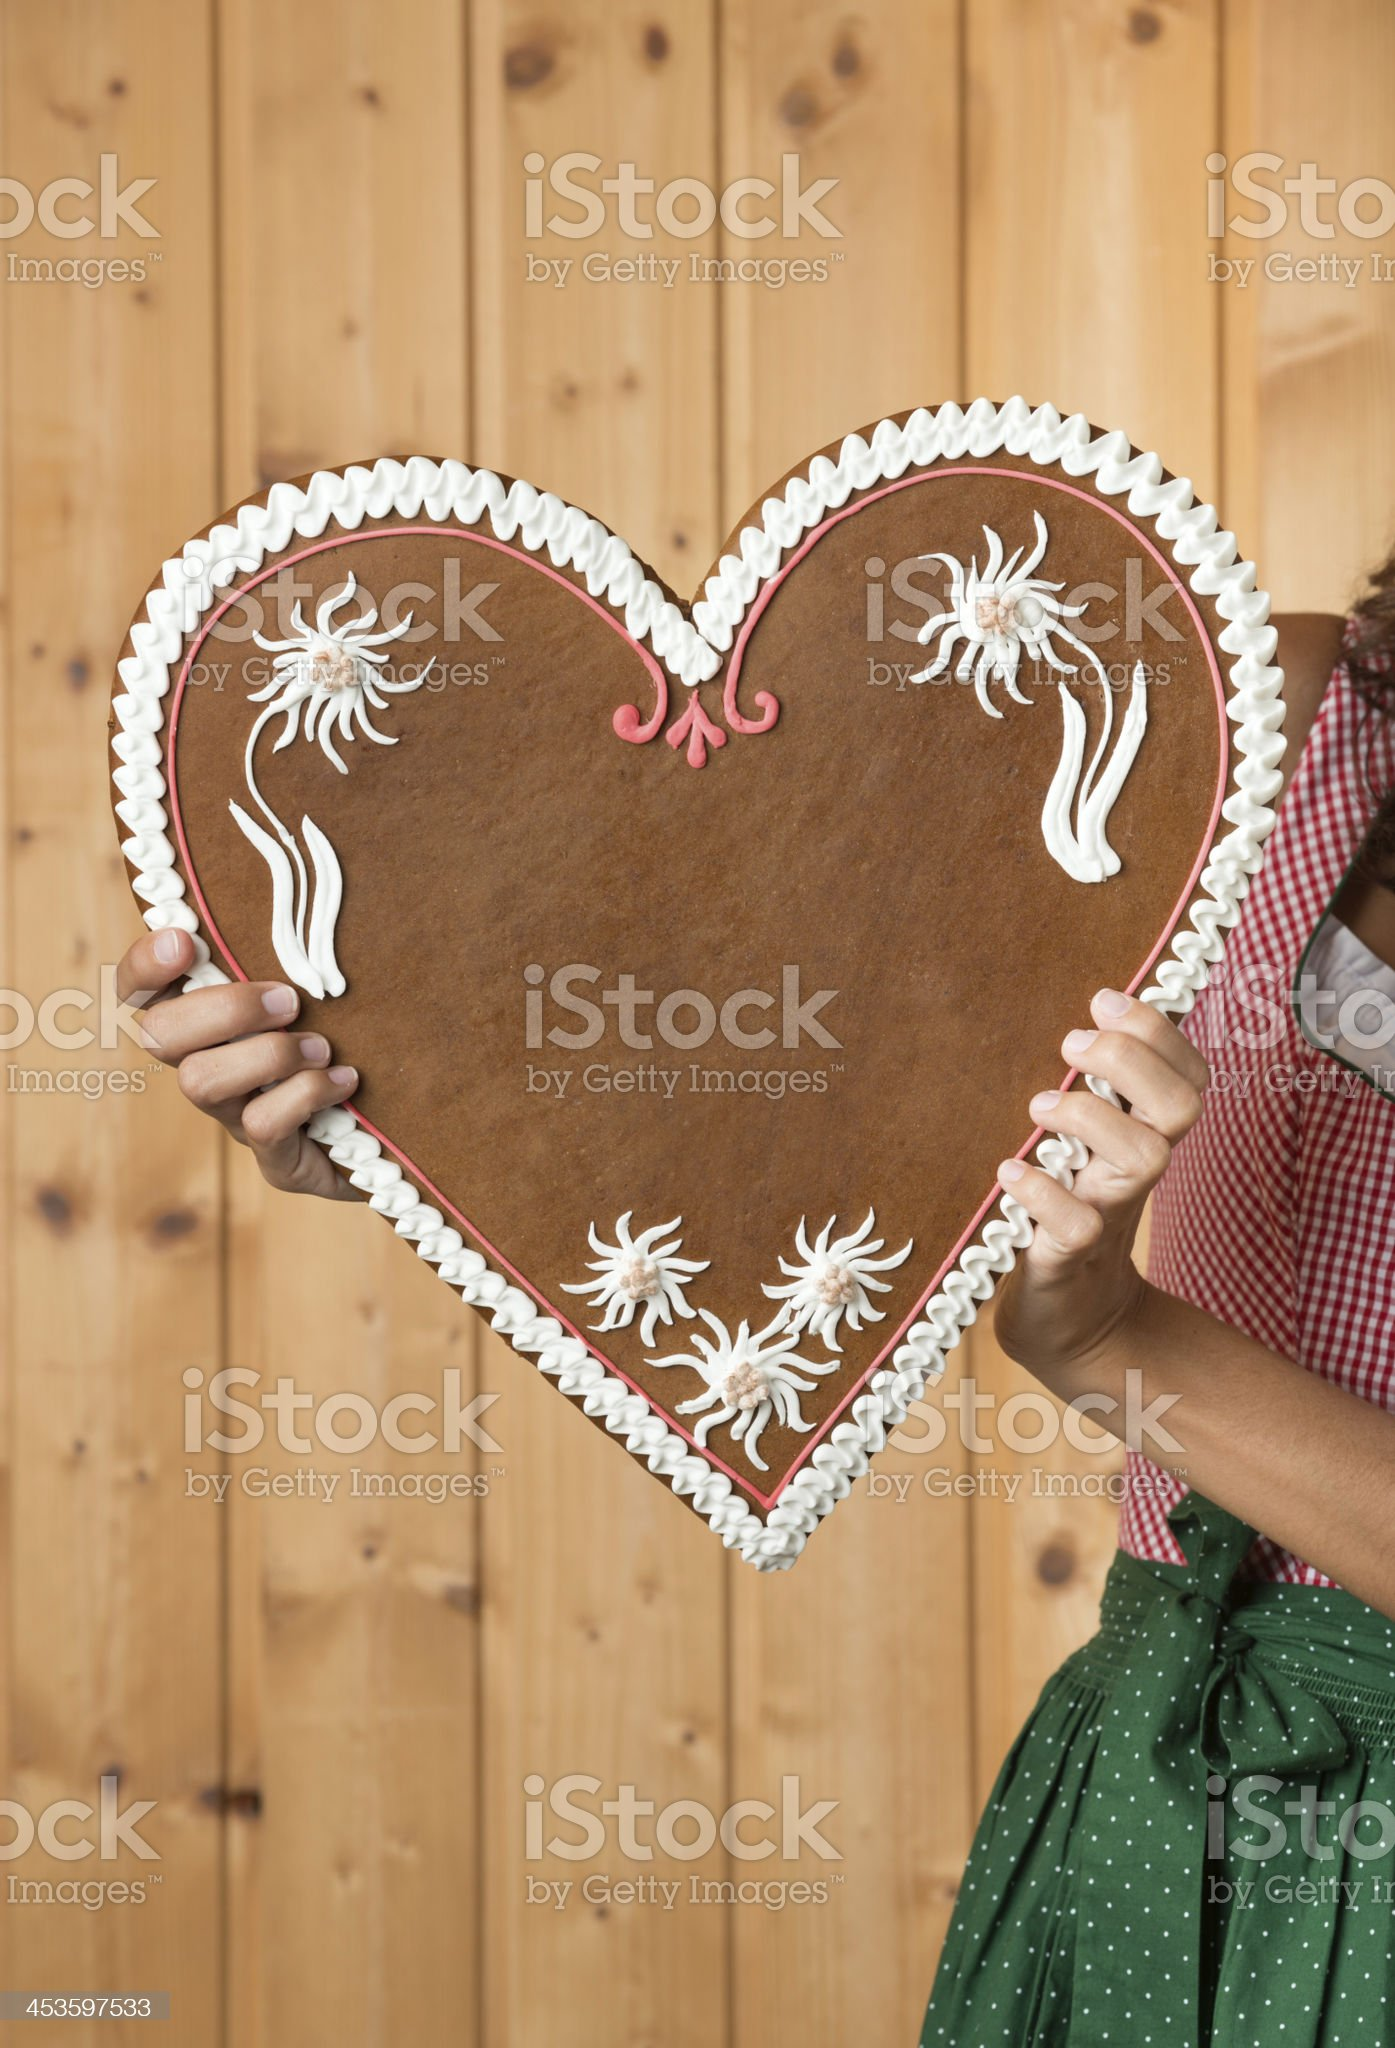 Lebkuchen Gingerbread Heart with Copy Space royalty-free stock photo